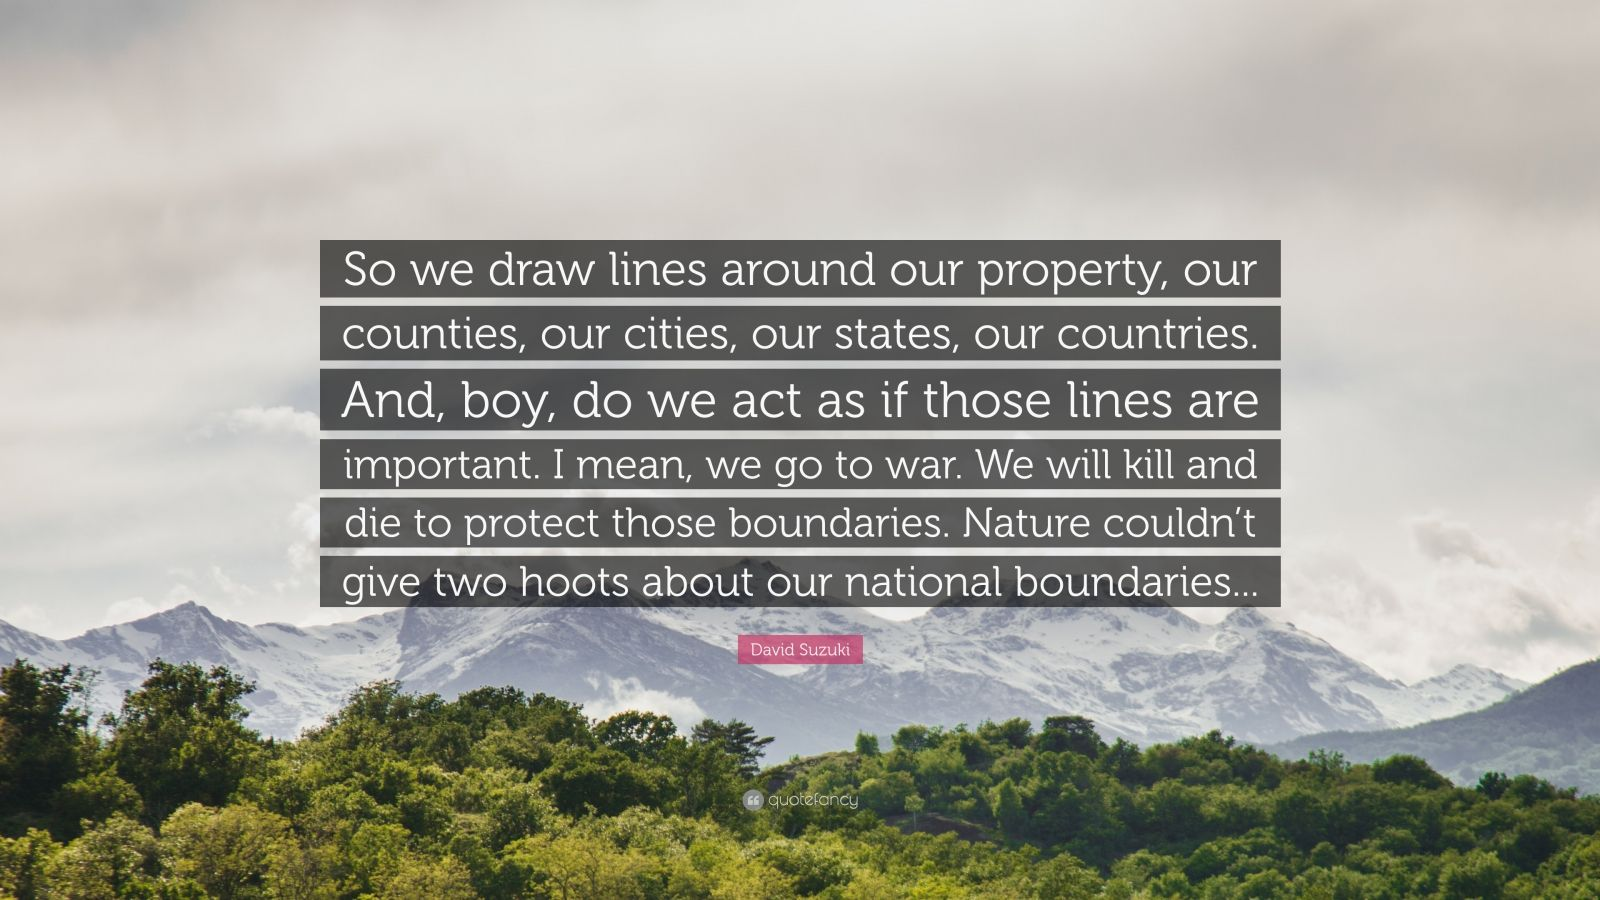 "David Suzuki Quote: ""So we draw lines around our property, our counties, our cities, our states, our countries. And, boy, do we act as if those lines are important. I mean, we go to war. We will kill and die to protect those boundaries. Nature couldn't give two hoots about our national boundaries..."""